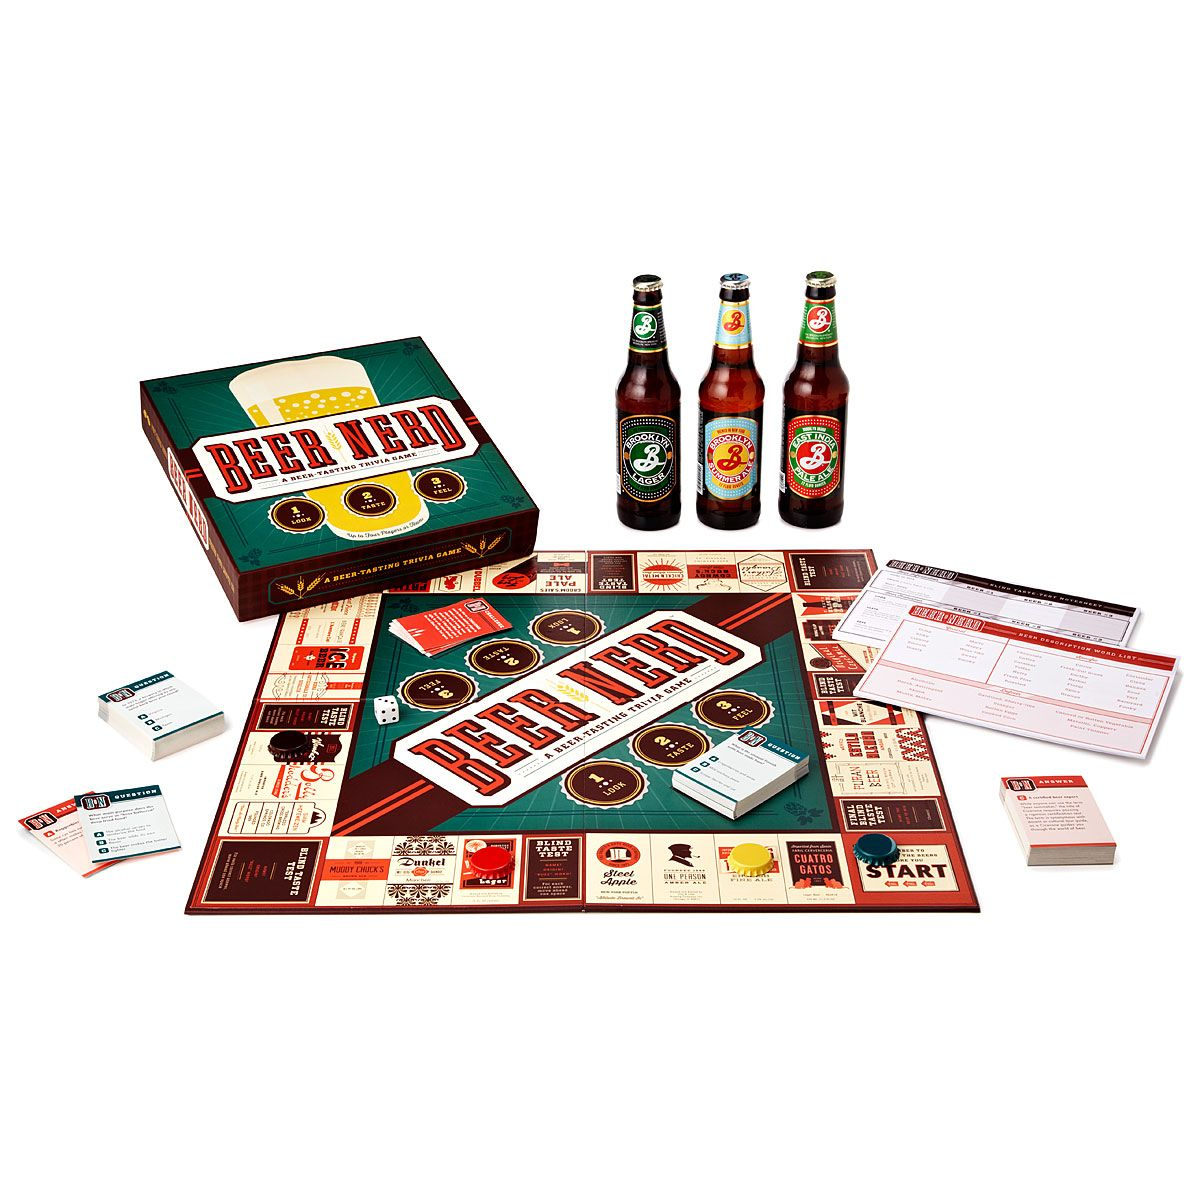 Wedding Gifts For Nerds: Beer Tasting Game